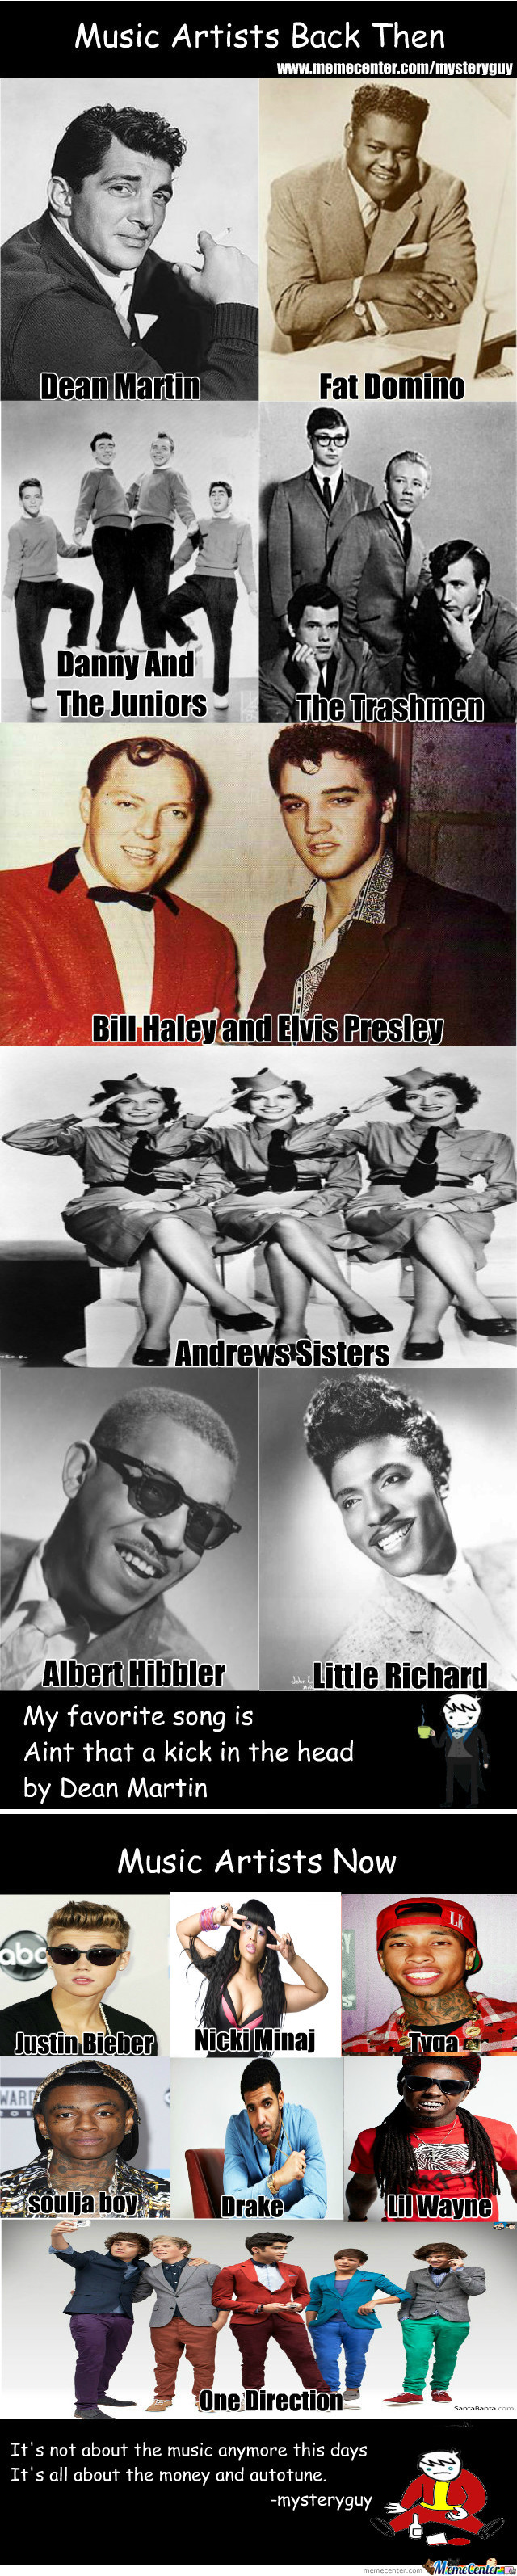 Music Artists Back Then And Now